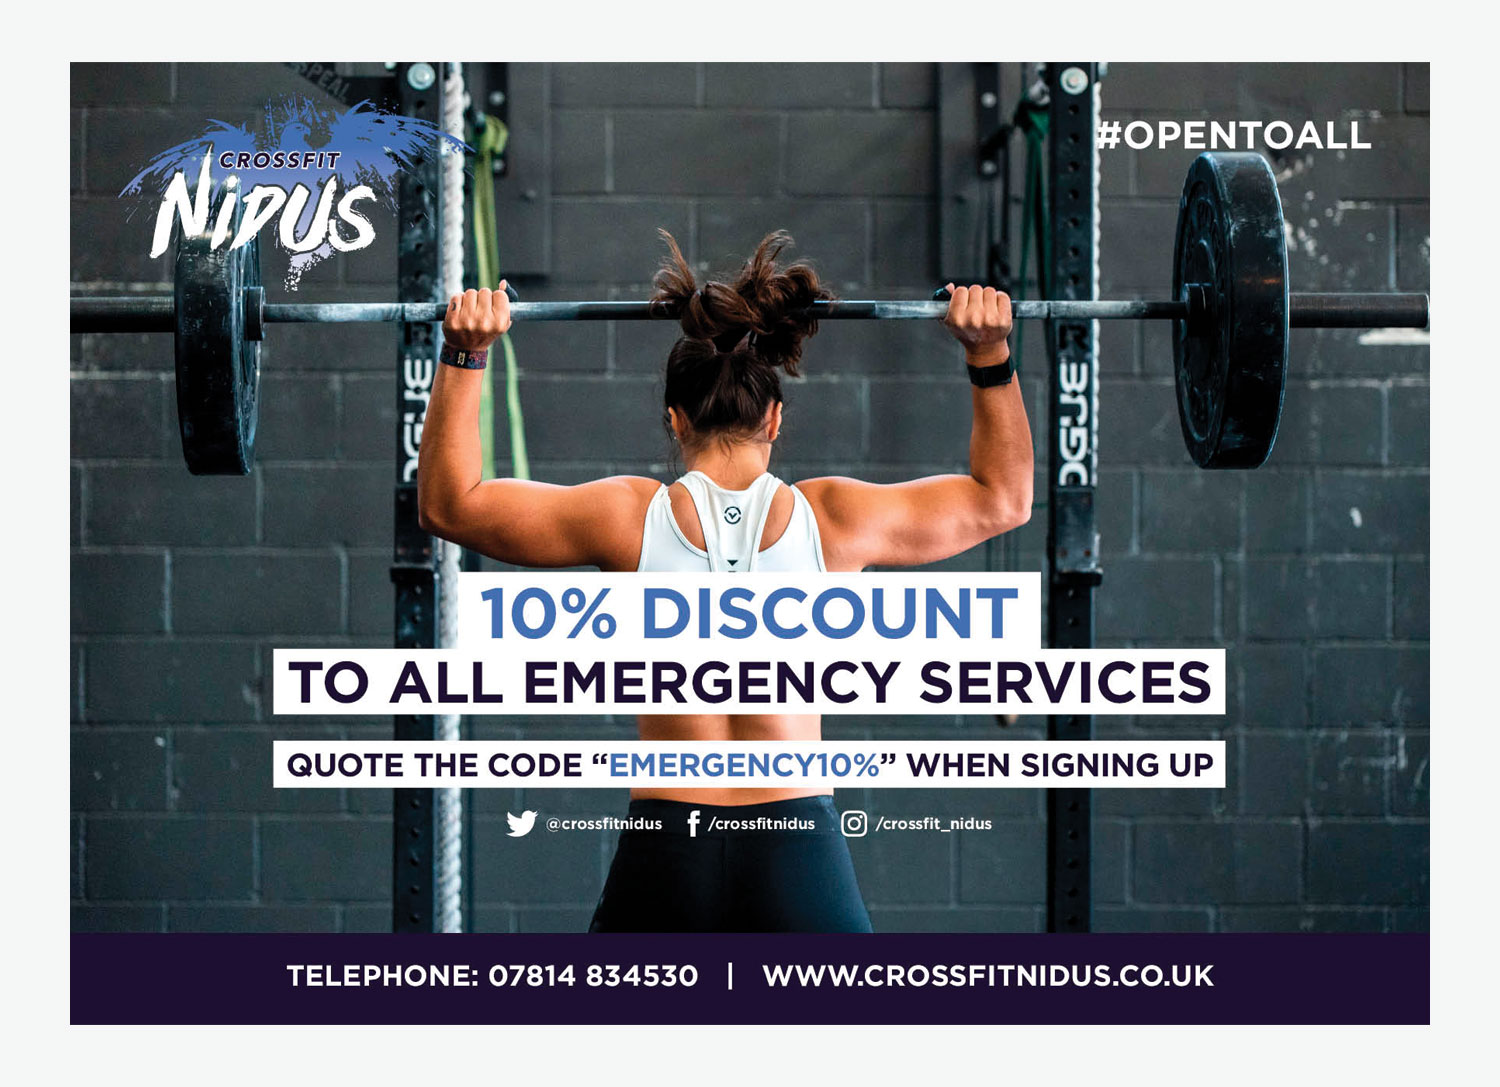 My Name is Dan Services Discount Poster Design for Crossfit Nidus